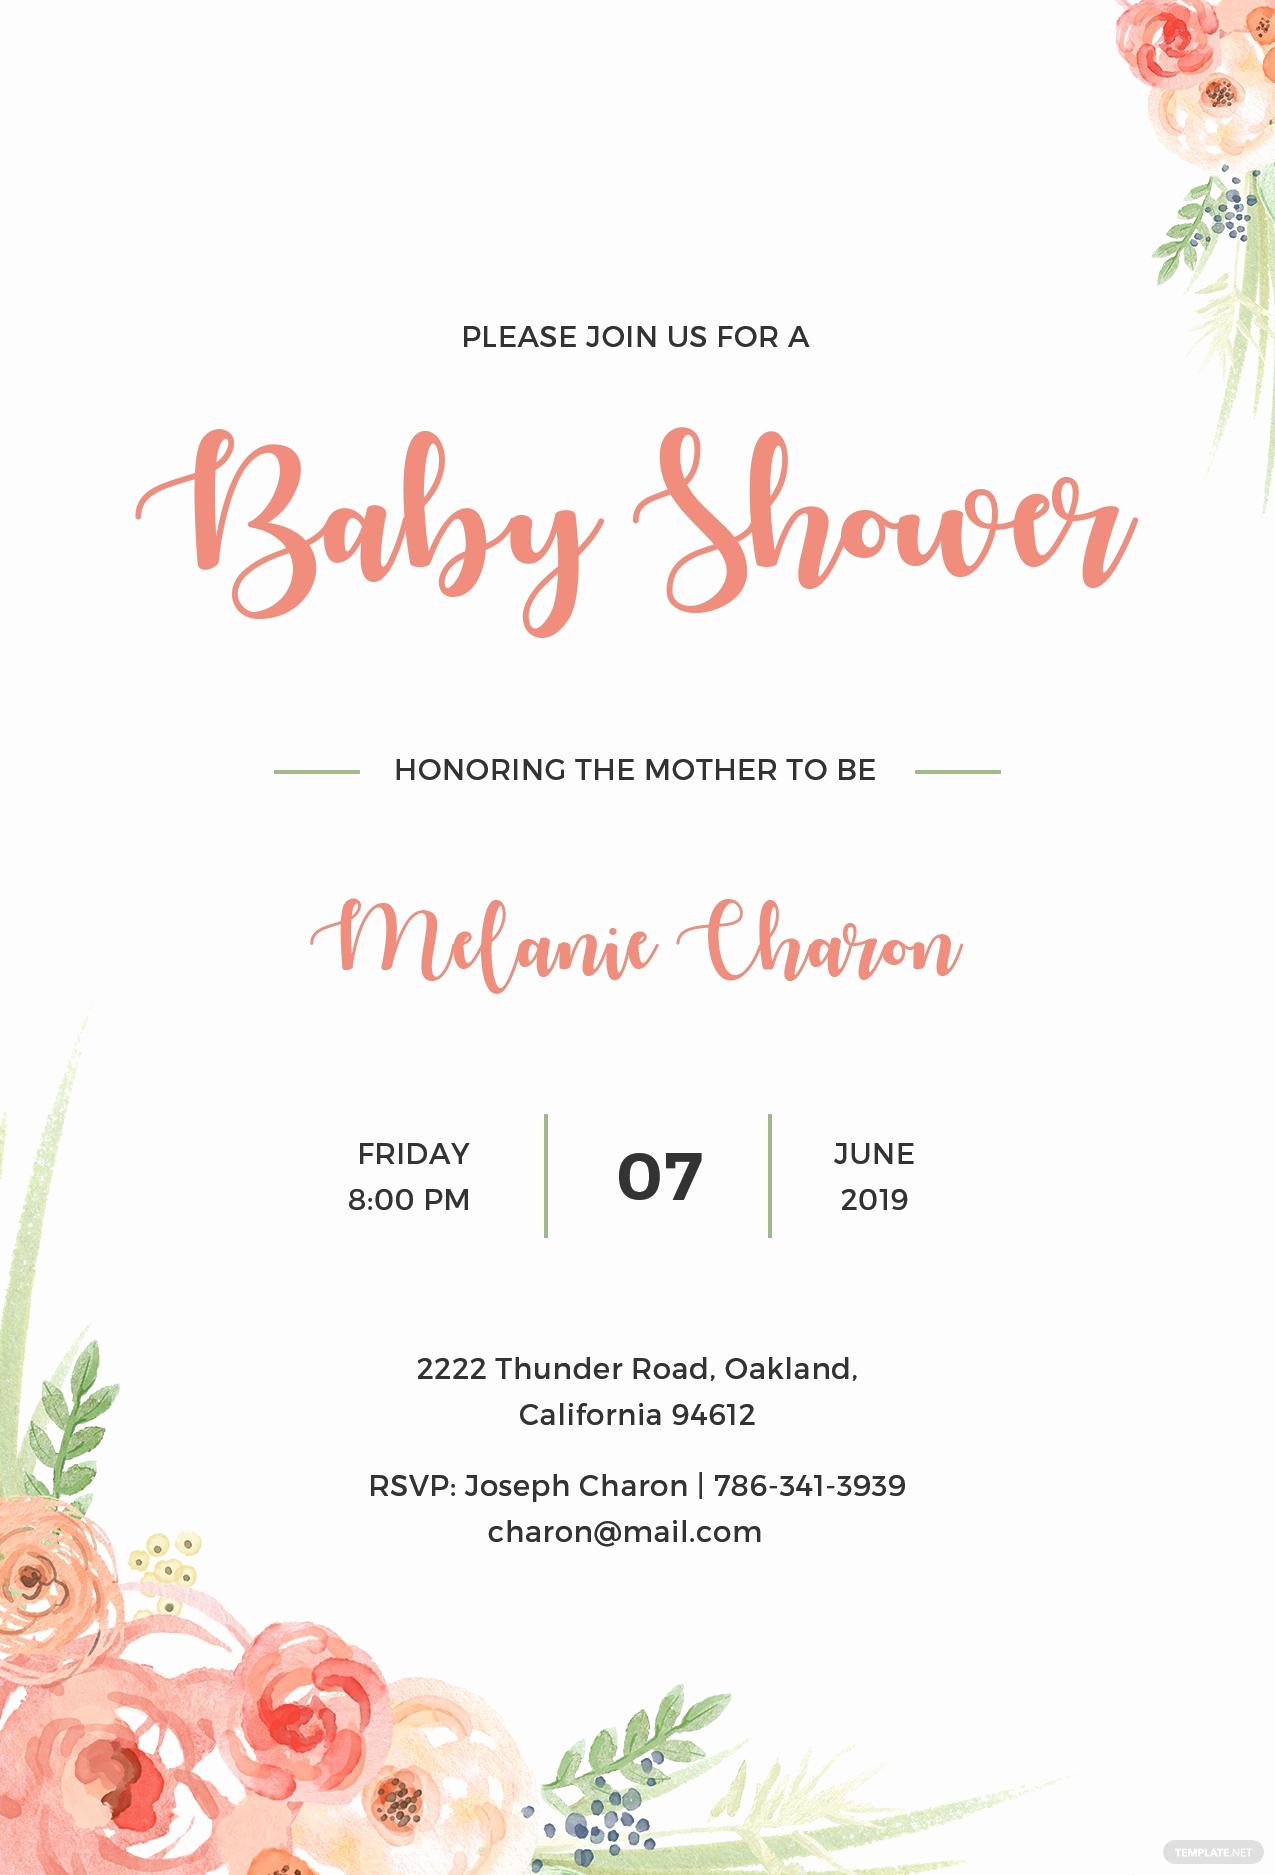 Baby Shower Invitation Template Word Best Of Free Baby Shower Invitation Template In Psd Ms Word